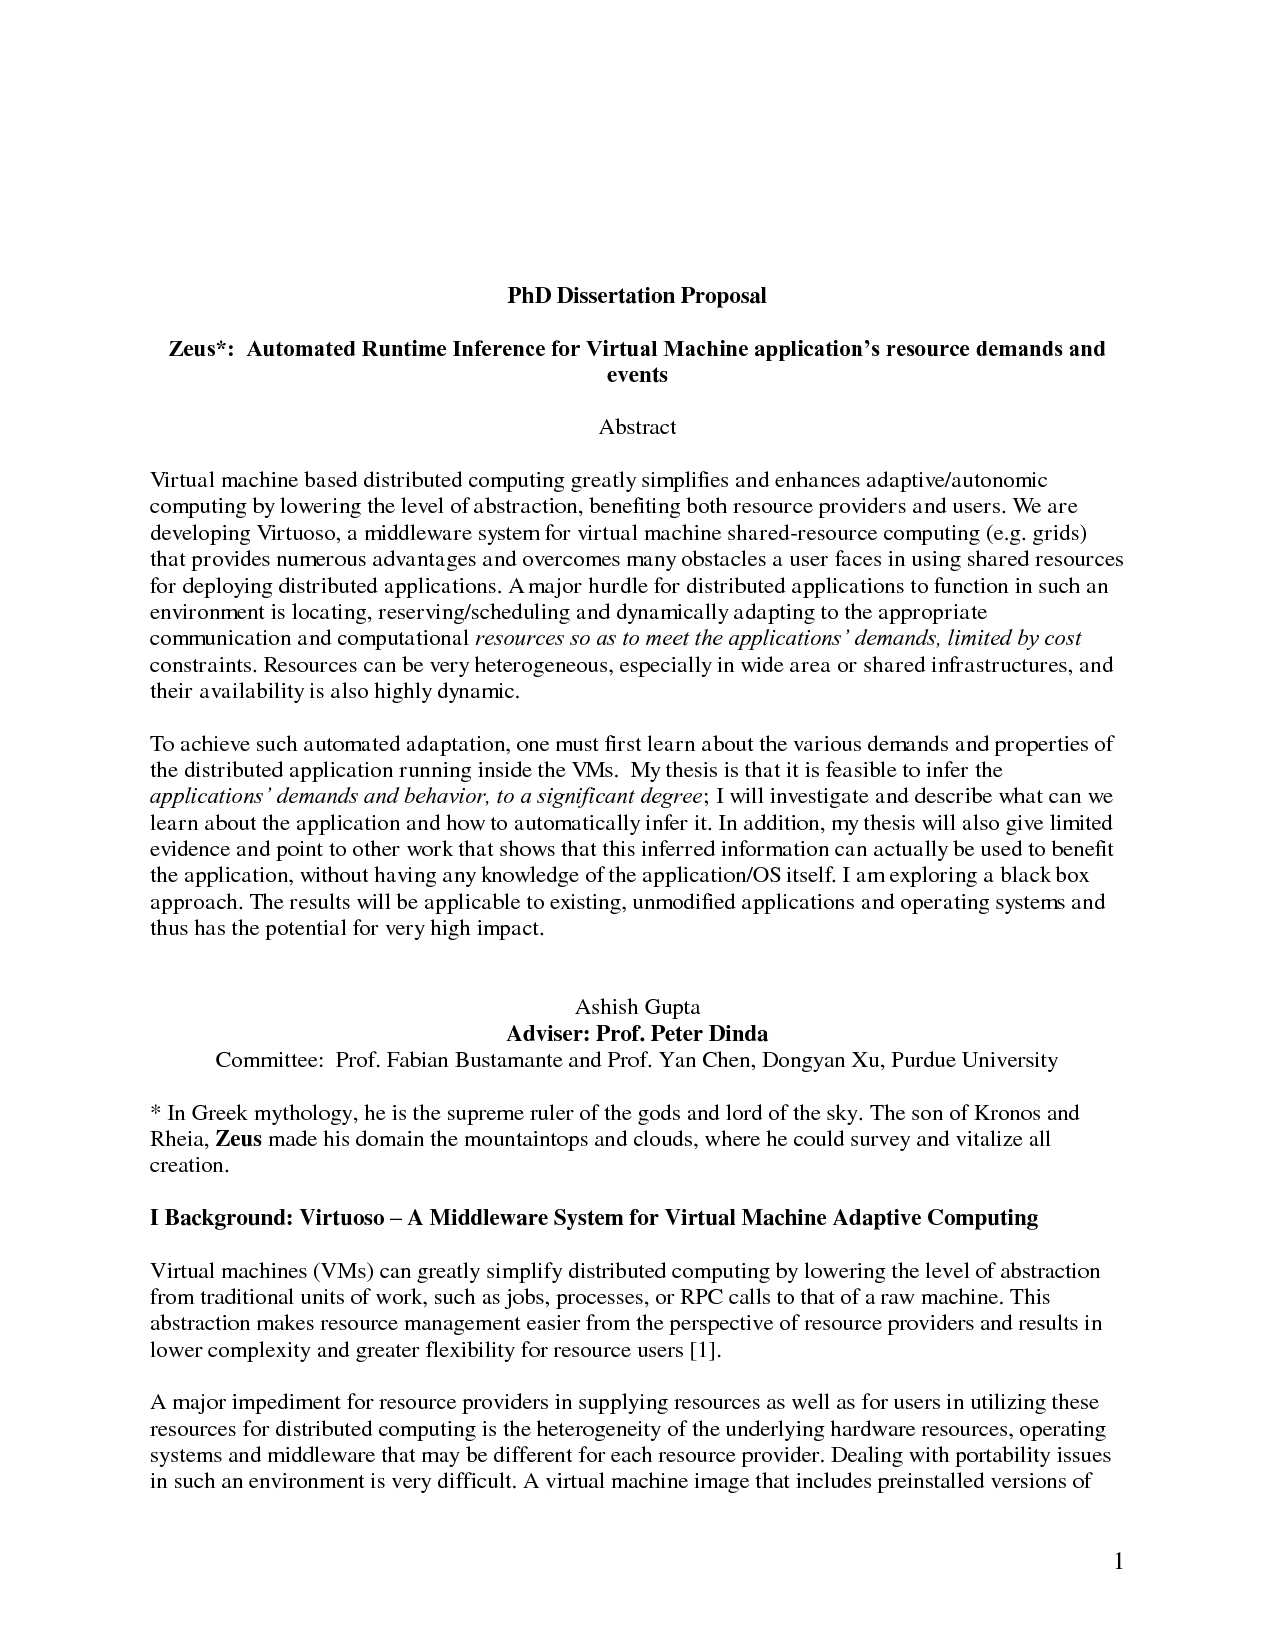 Phd dissertation abstract